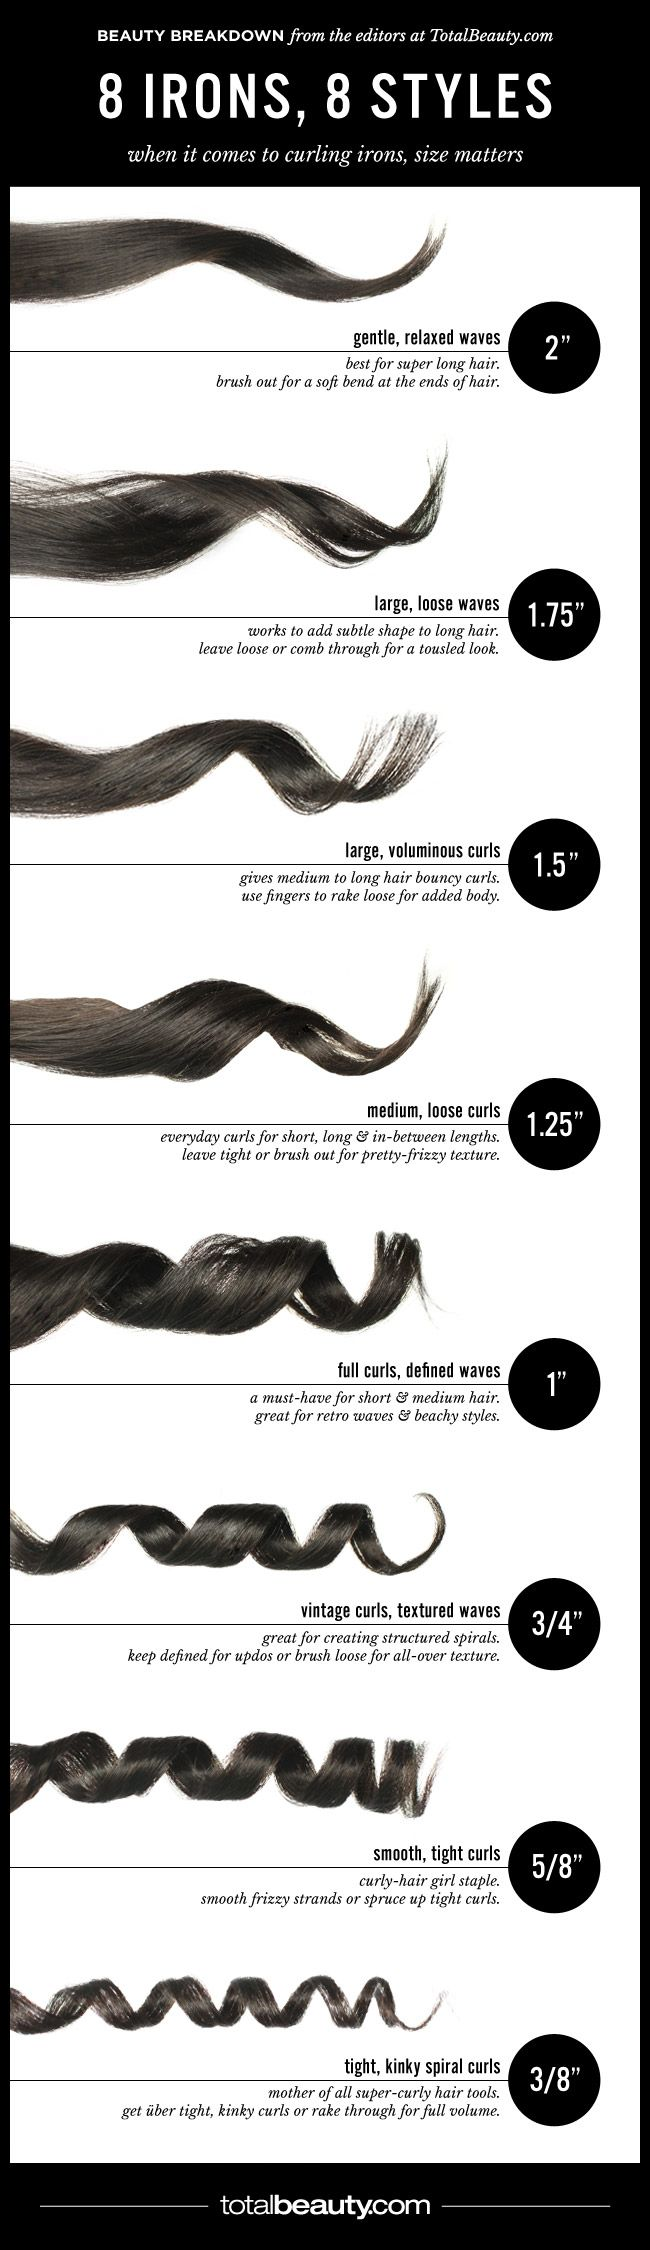 No wonder i'm not getting the curls I want.  I need a smaller curling iron wand.  This will help. Curling Iron Line-Up: The Right Wand for Every Curl